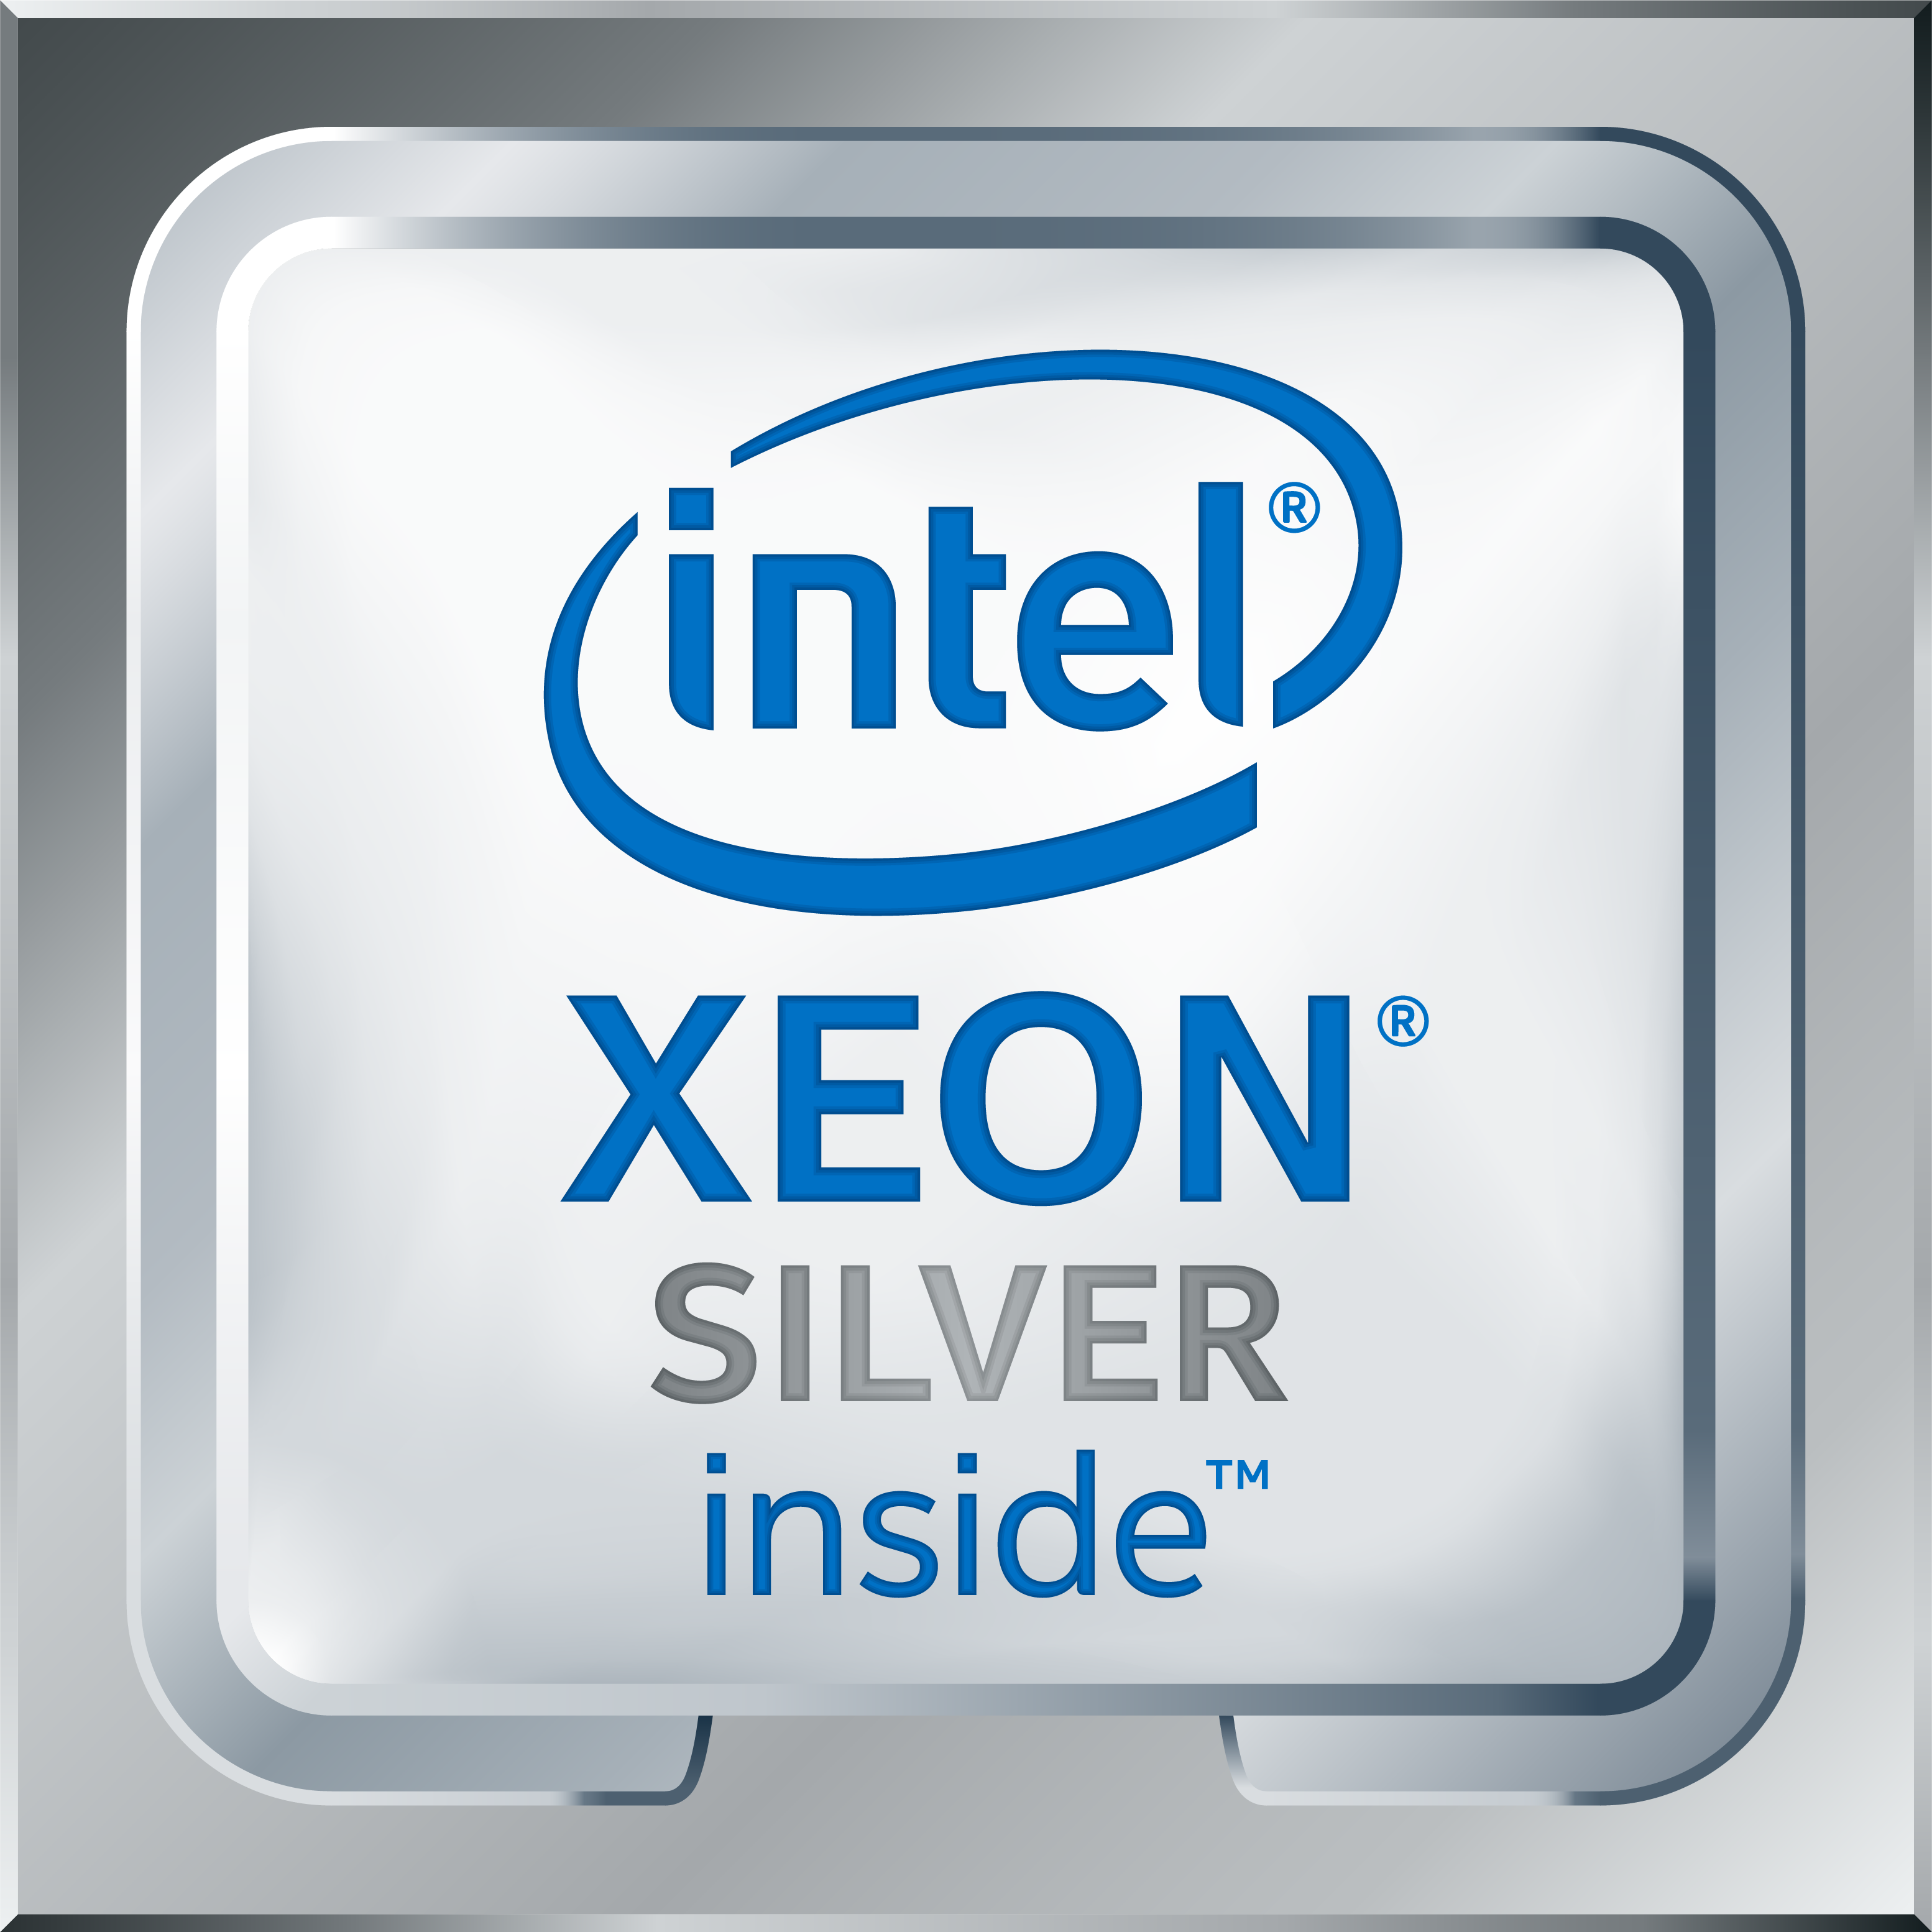 Intel Xeon Silver Logo High Res Transparent 2017